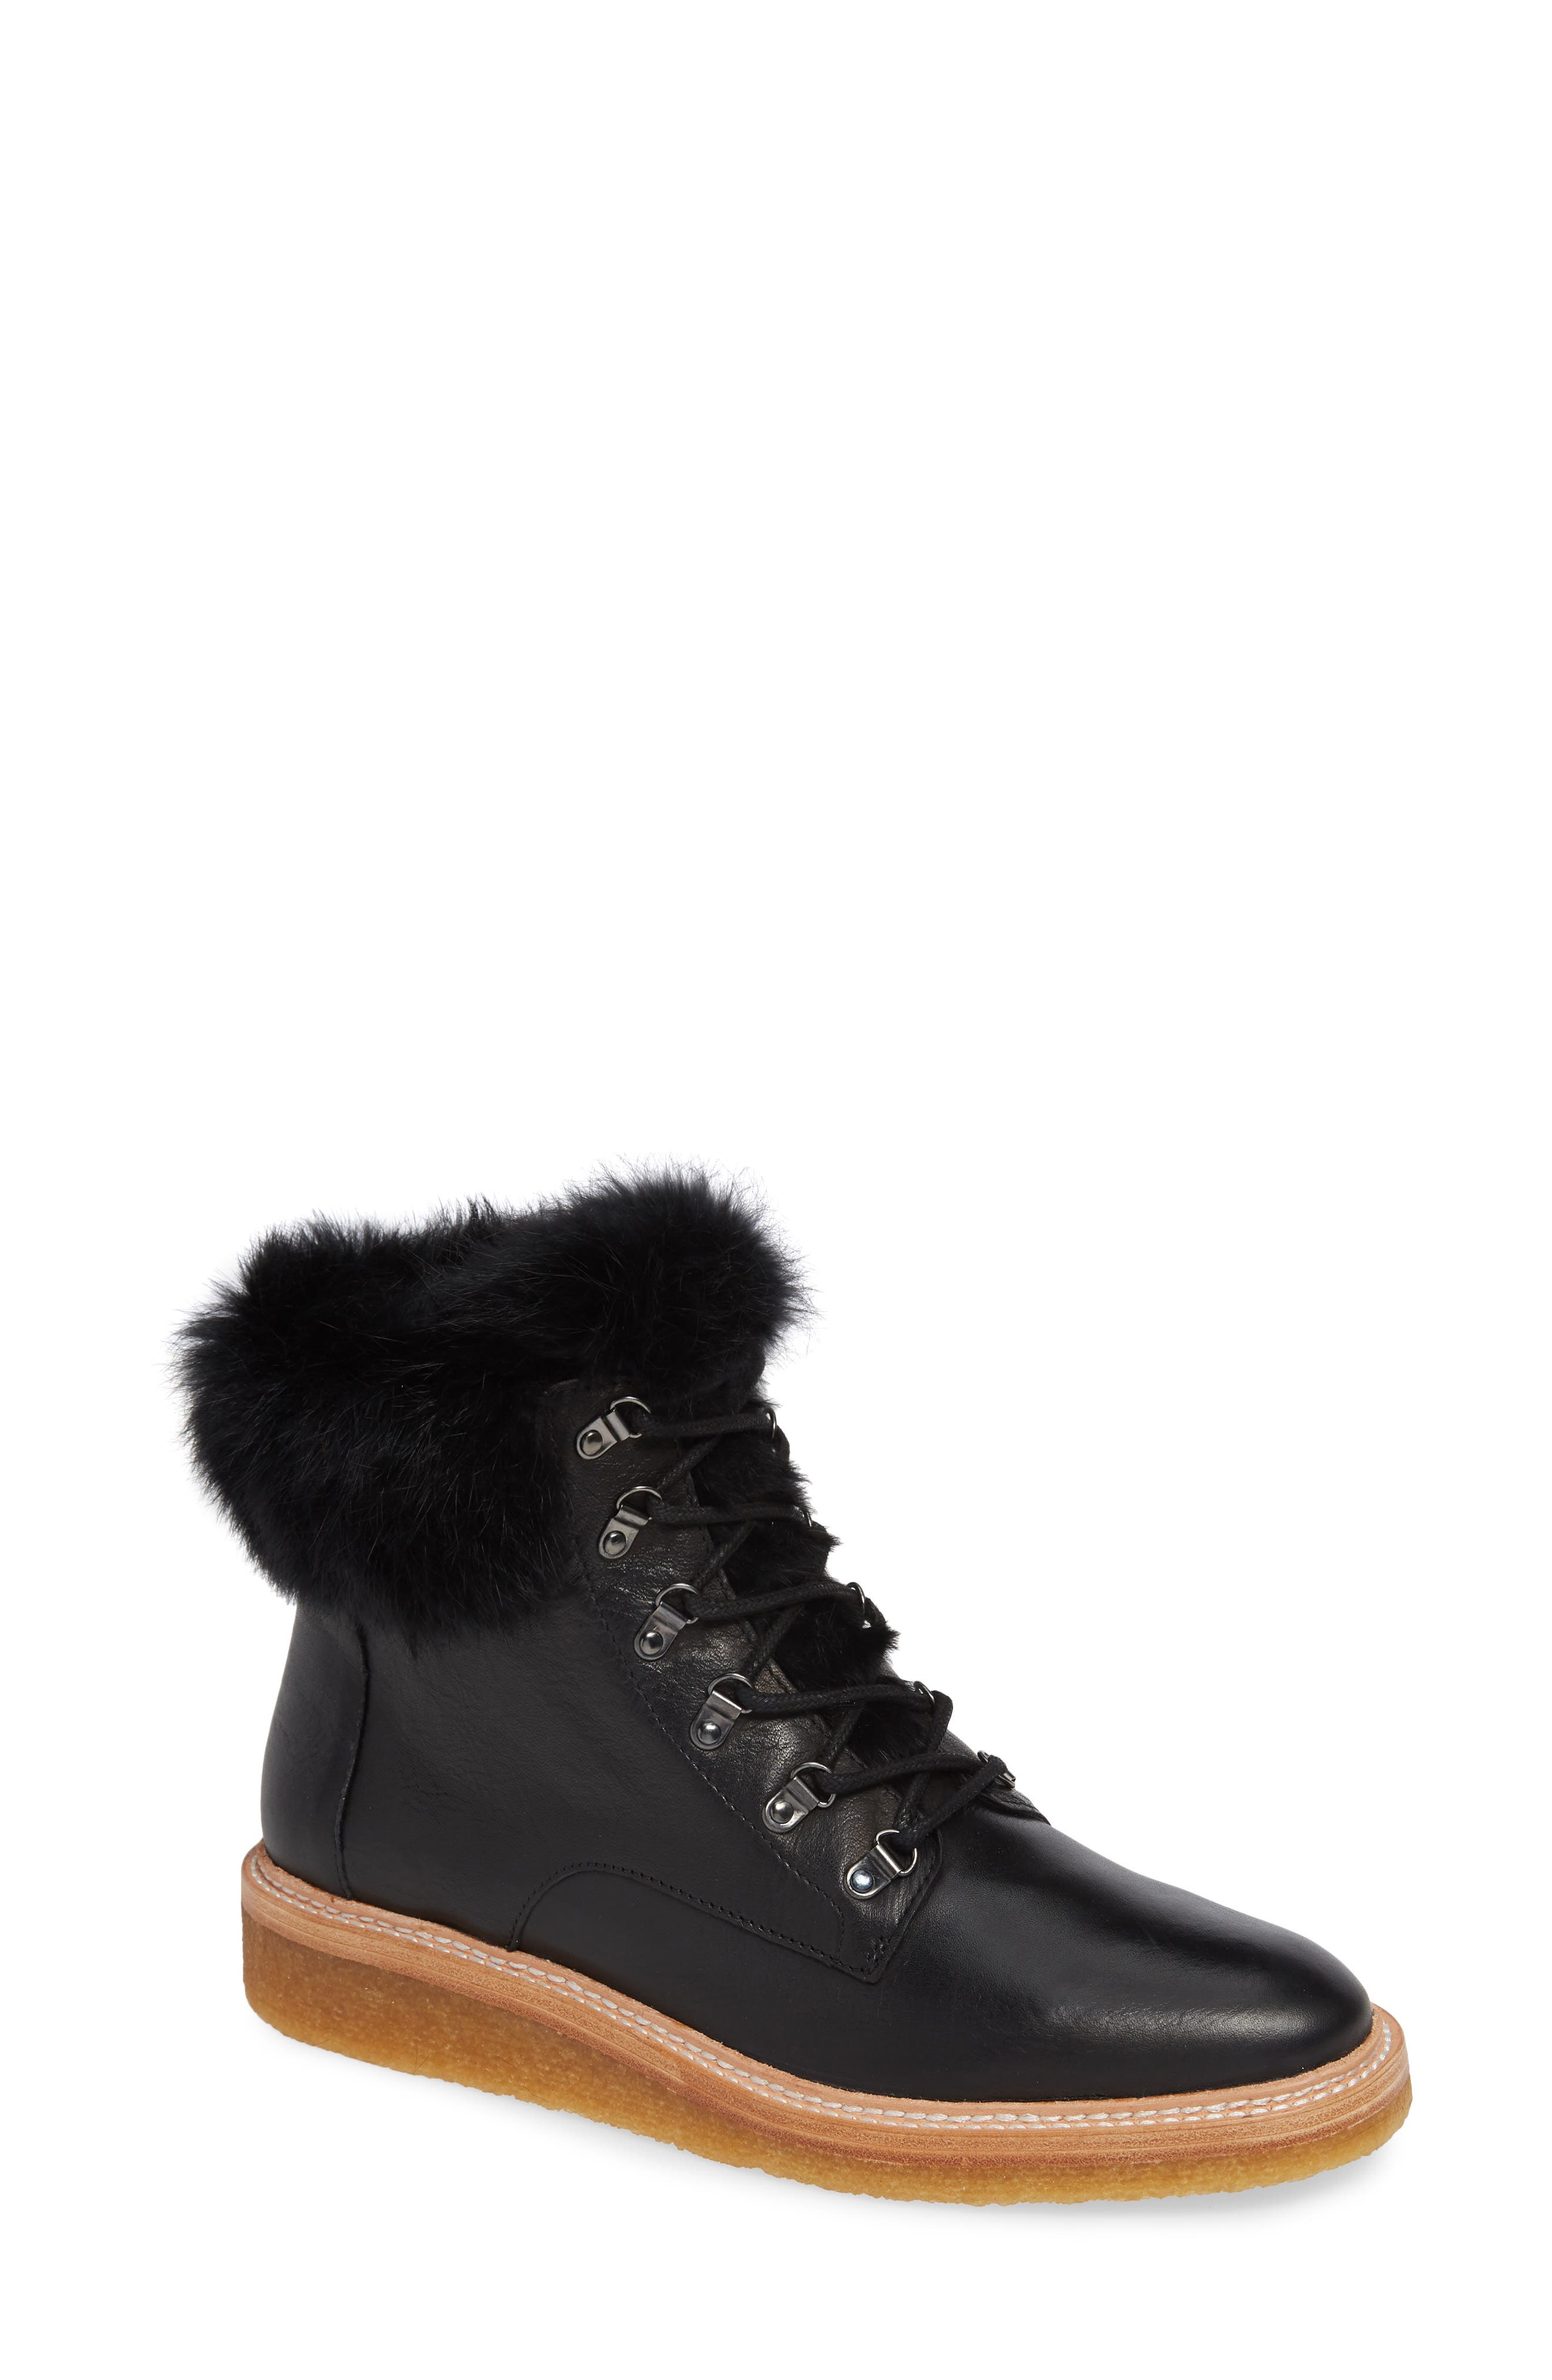 Winter Genuine Rabbit Fur Trim Boot,                         Main,                         color, BLACK LEATHER